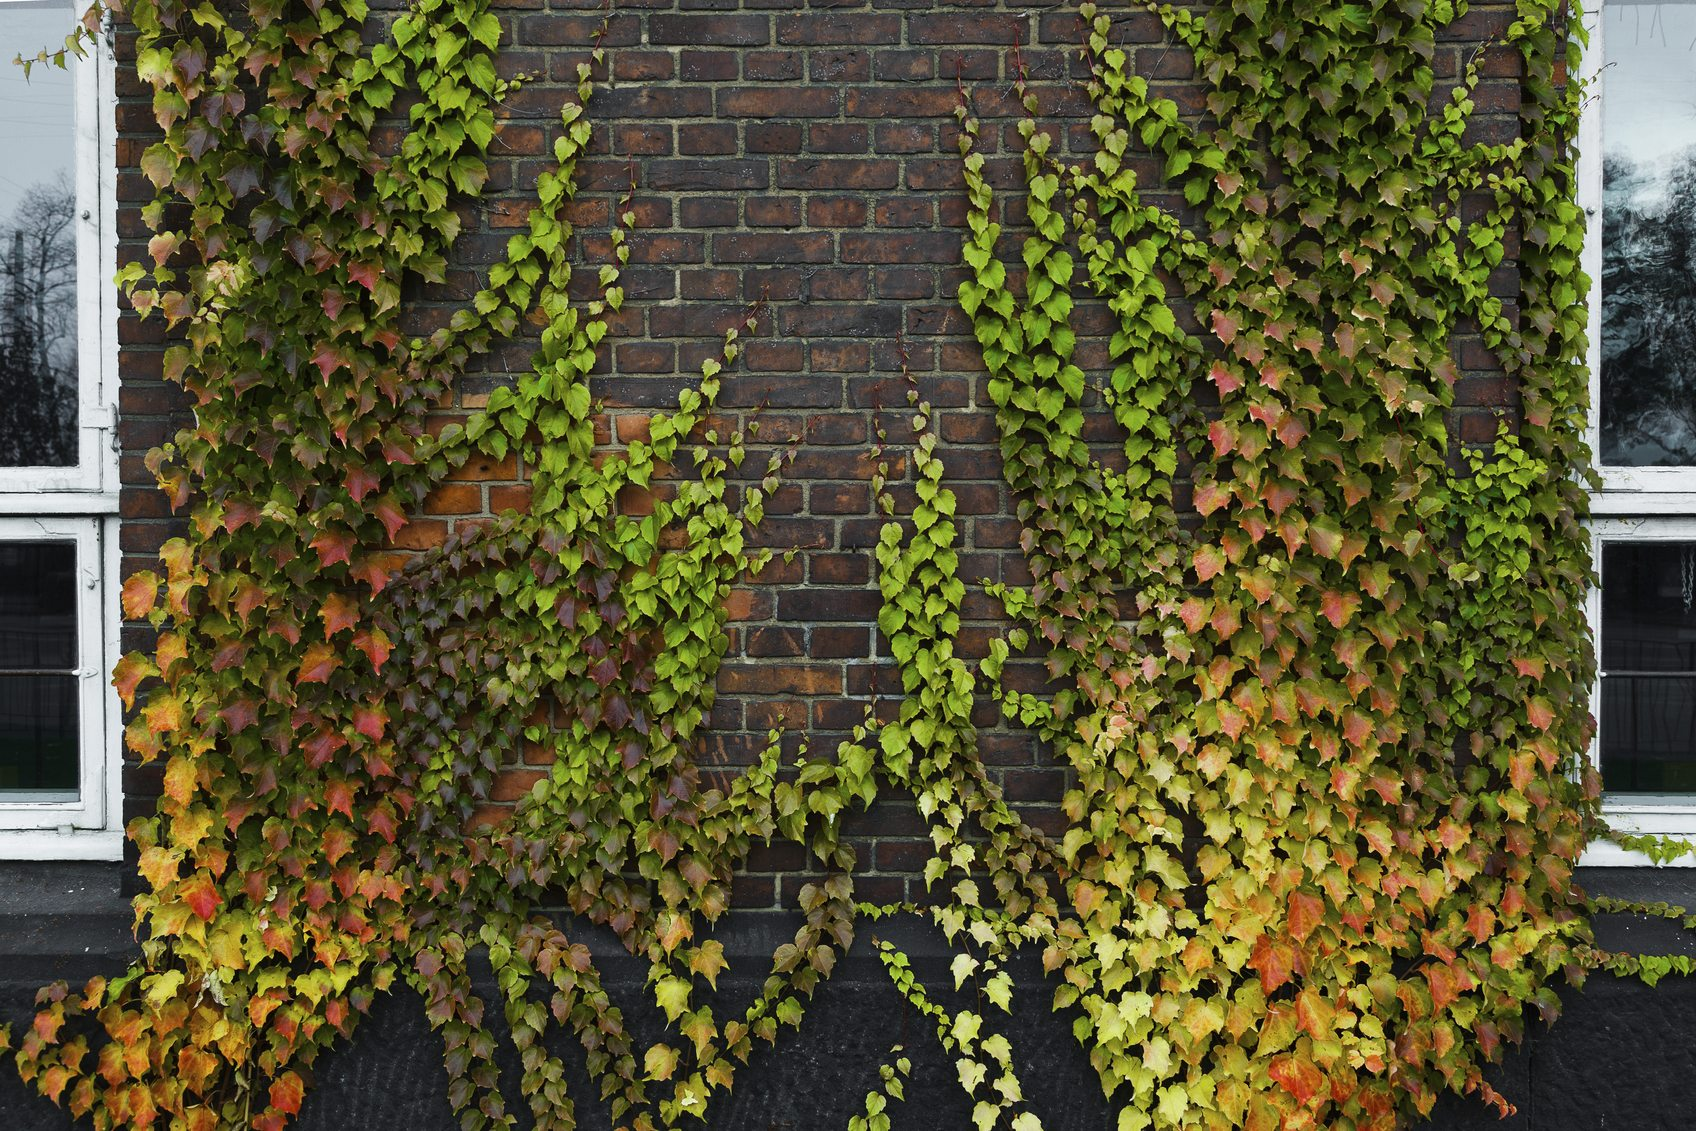 Best Vines For Brick Walls - Tips On Choosing Vines For ...